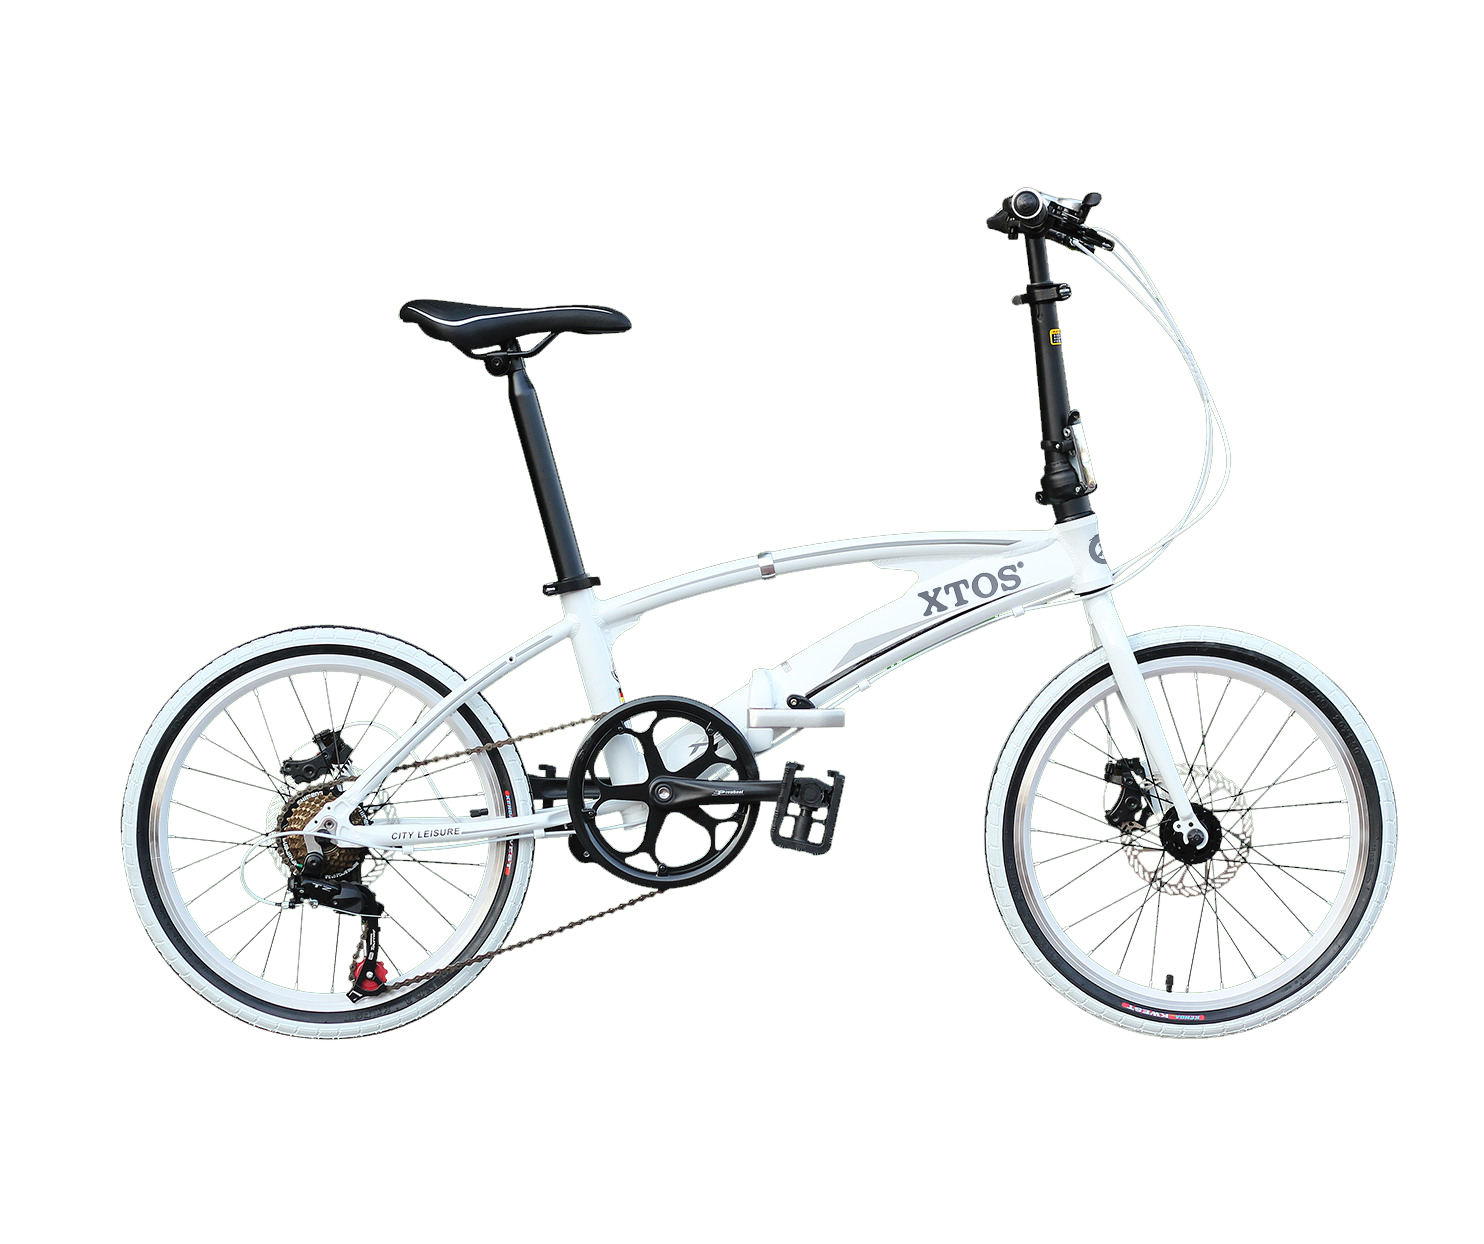 XTOS 20/22 inch aluminum alloy Double tube folding bicycle Shimano 7speed transmission wholesale bicycle